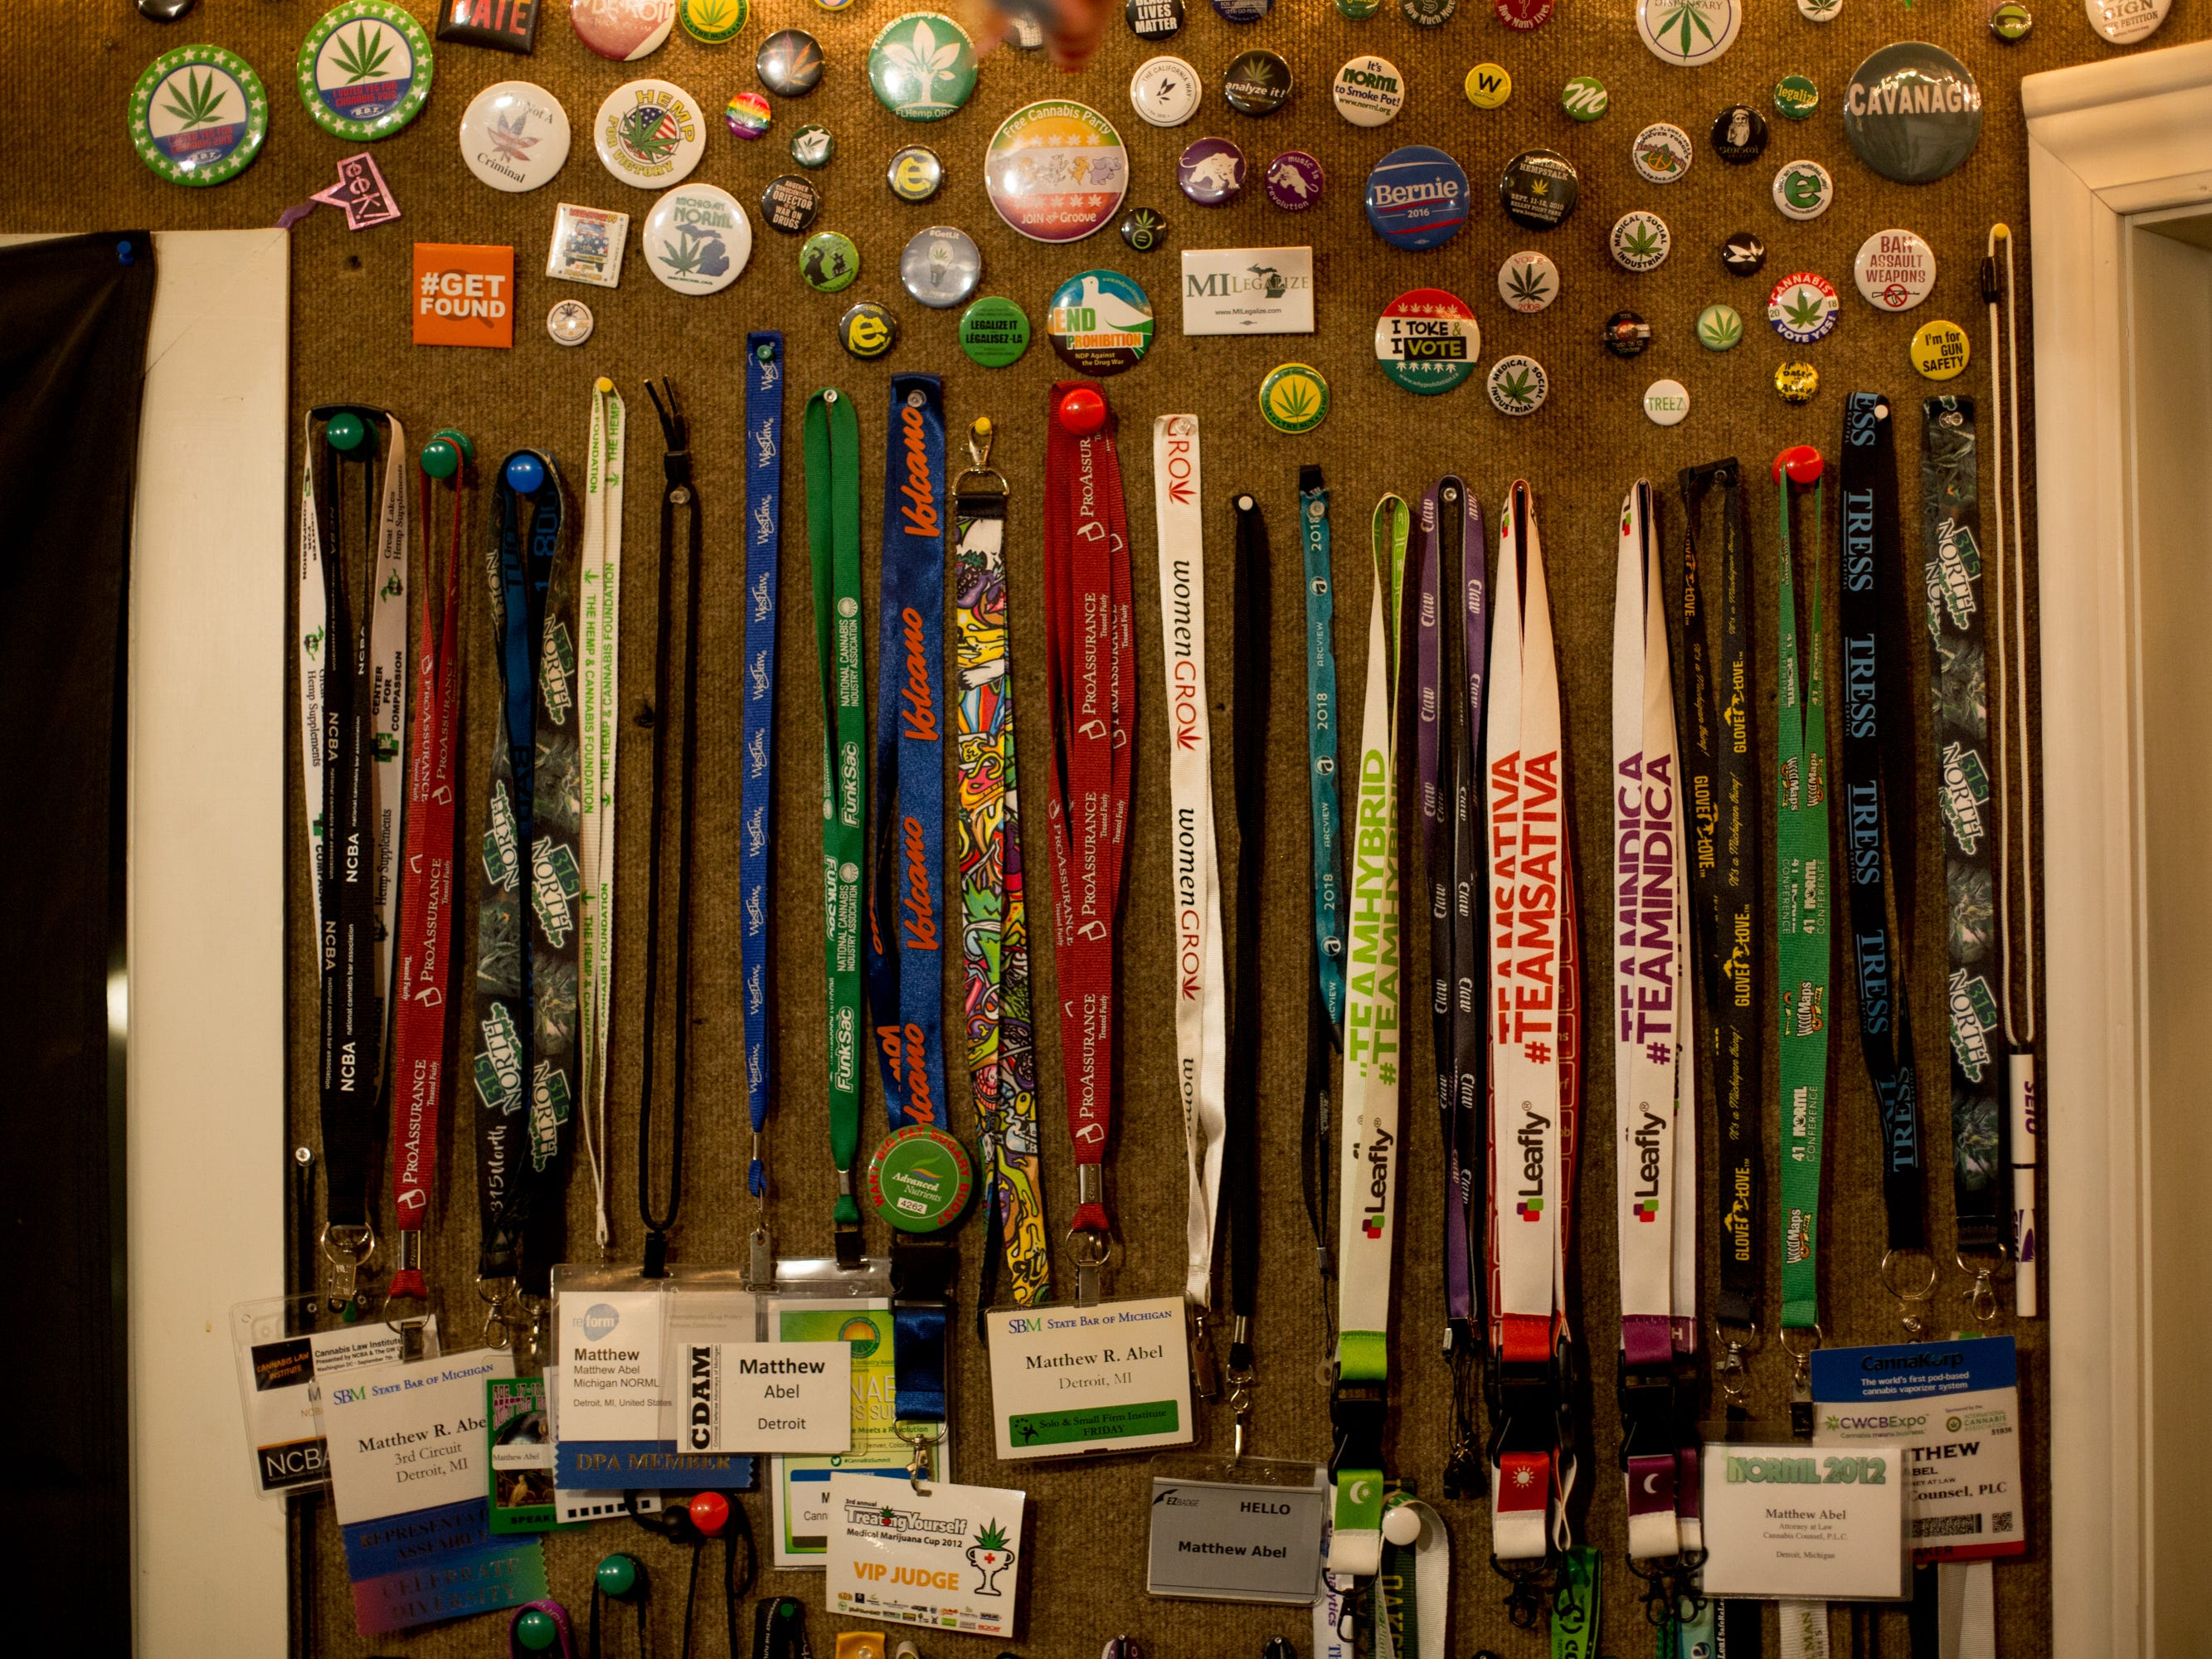 Lanyards attached to Matthew Abel's name hang on the wall.